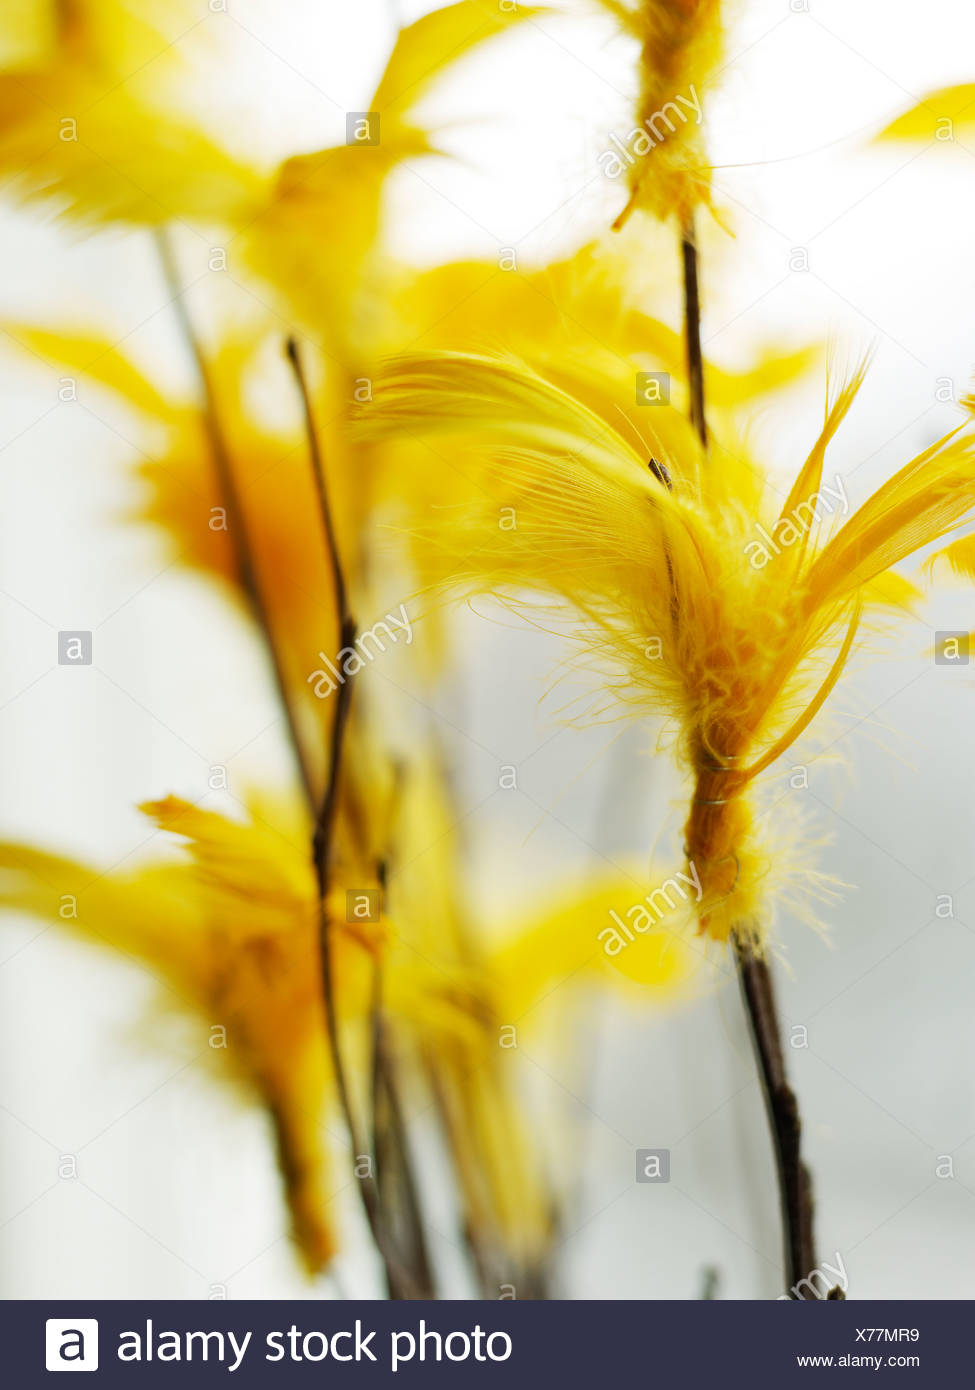 Twigs with coloured feathers Sweden. - Stock Image